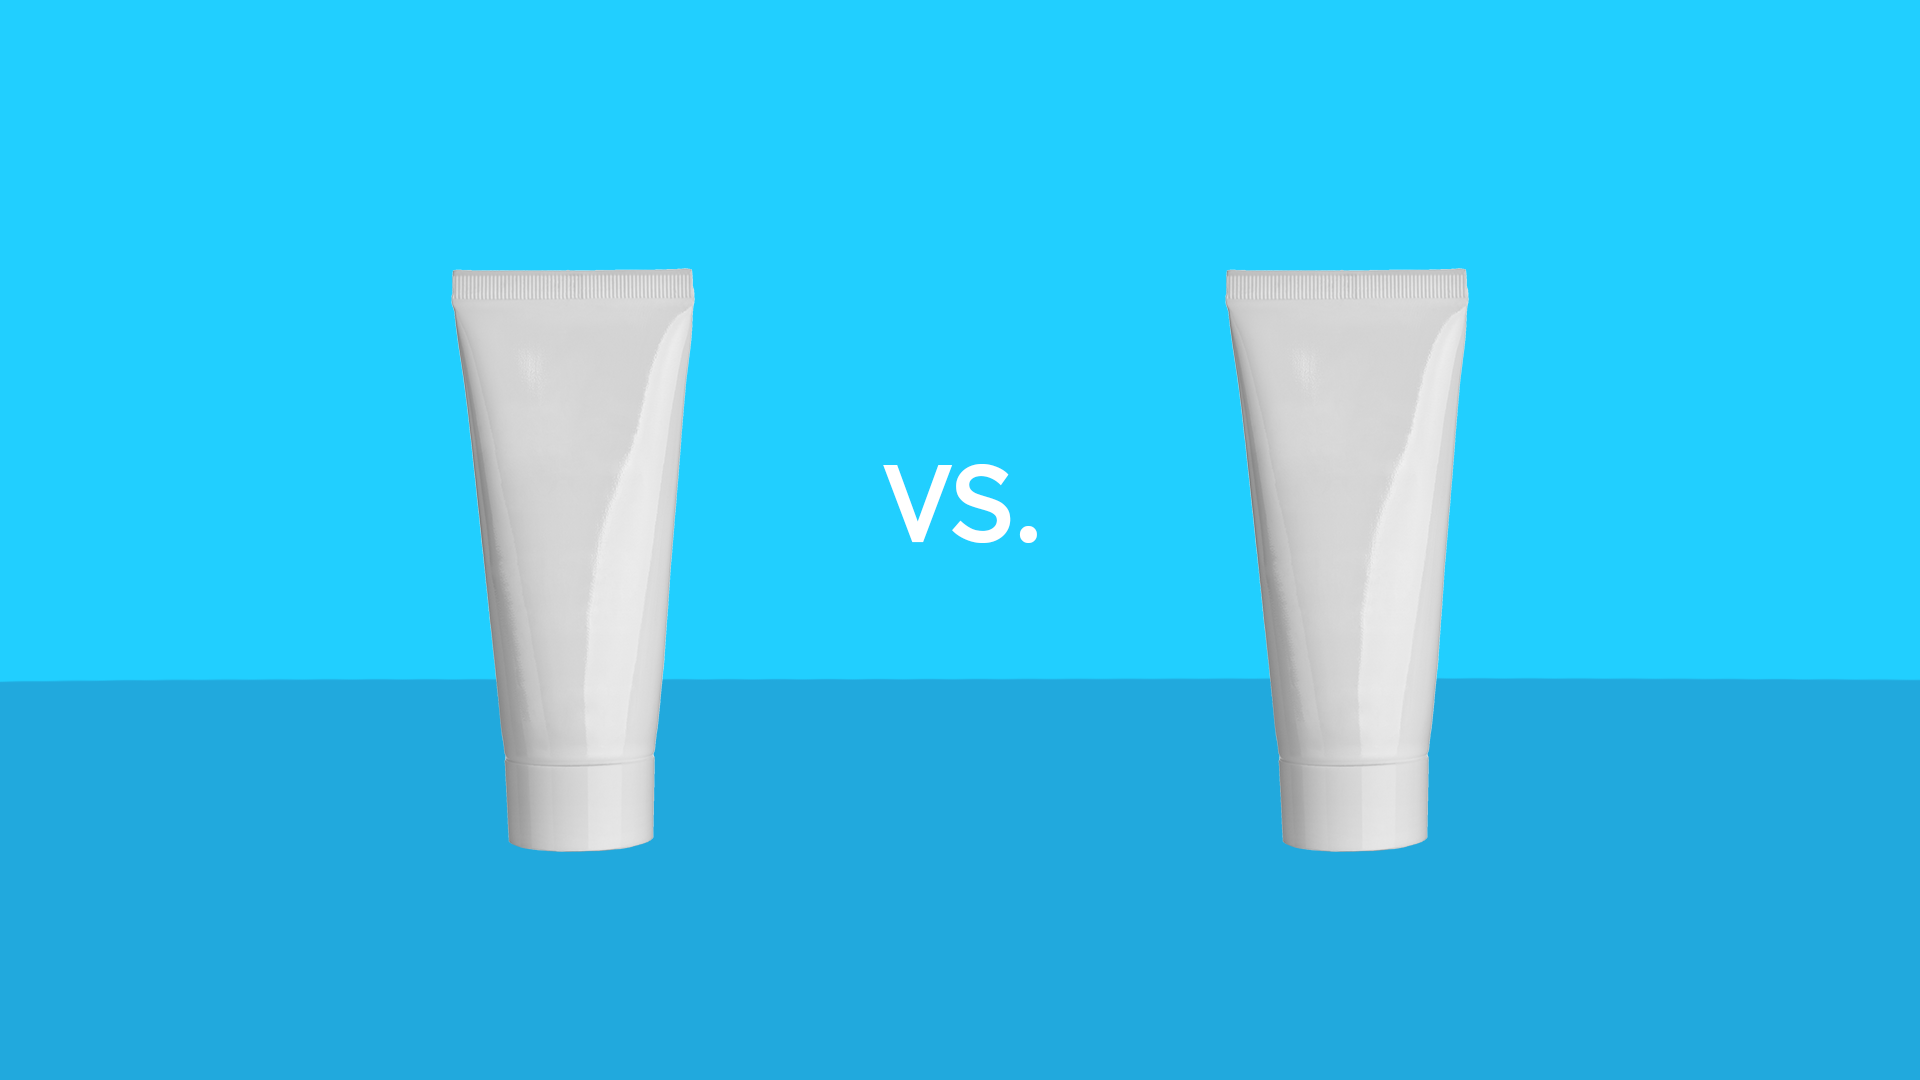 Terconazole vs. miconazole: Differences, similarities, and which is better for you